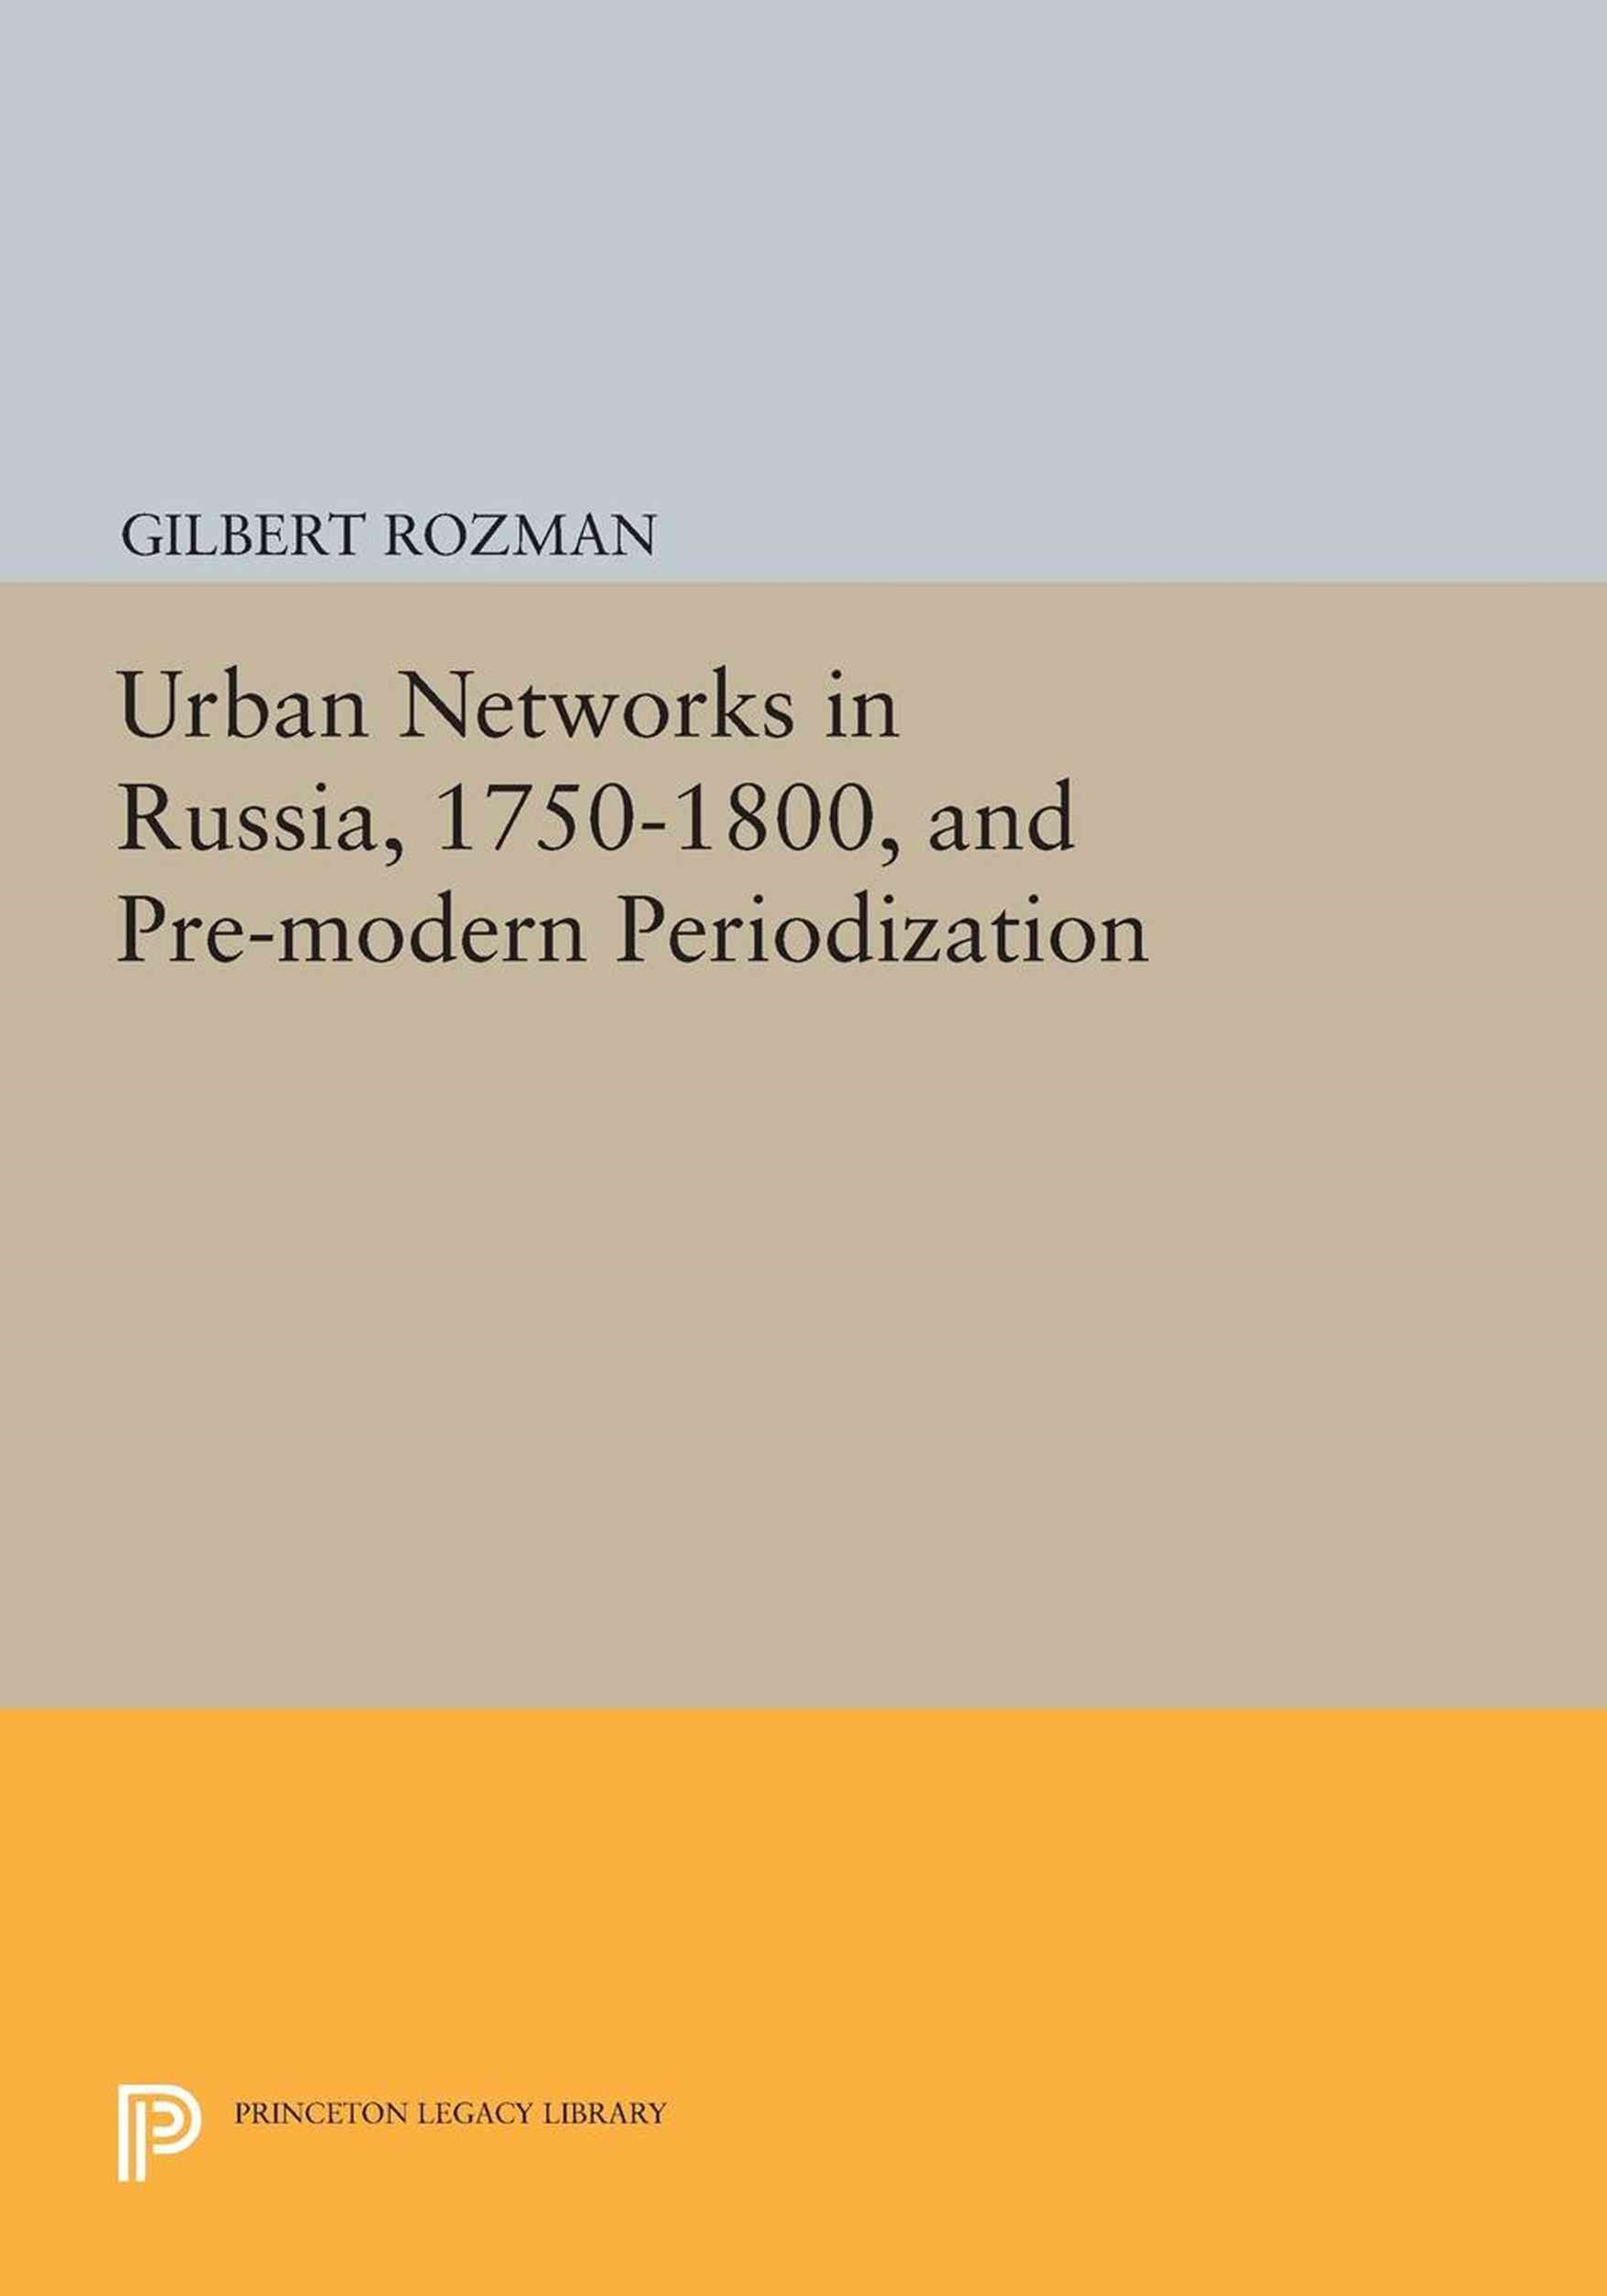 Urban Networks in Russia, 1750-1800, and Pre-Modern Periodization